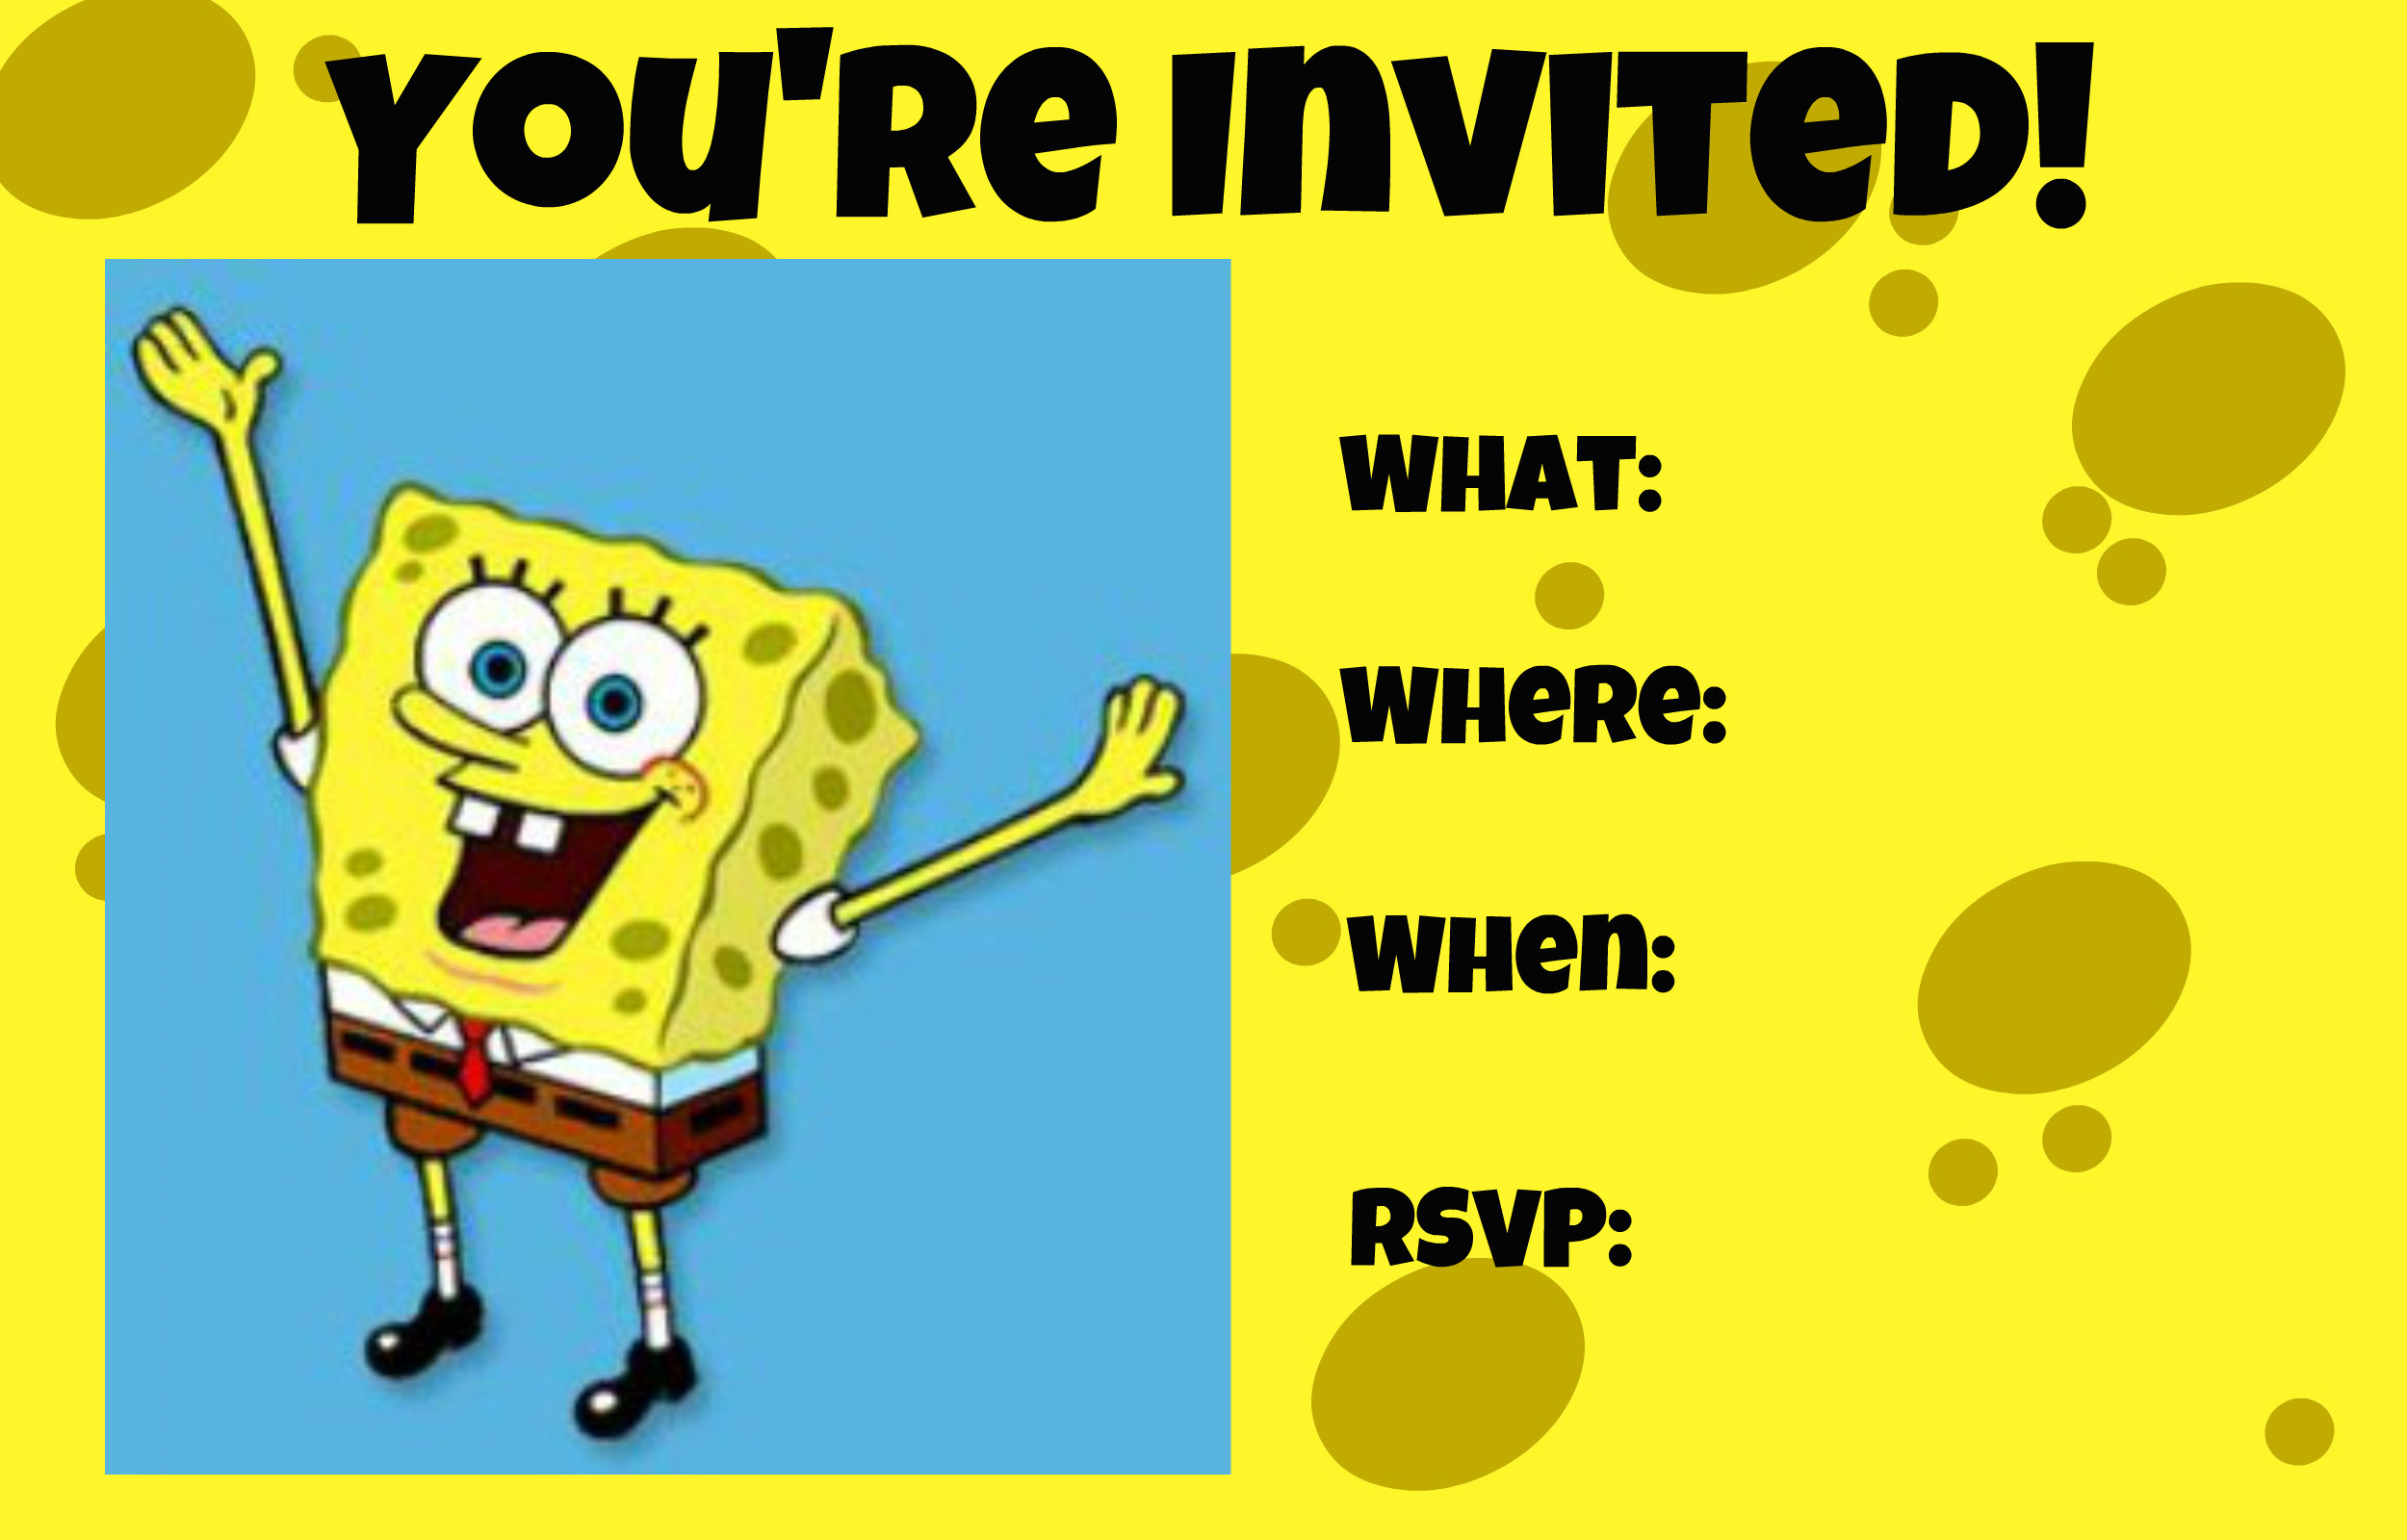 2500x1600 SpongeBob SquarePants invitation